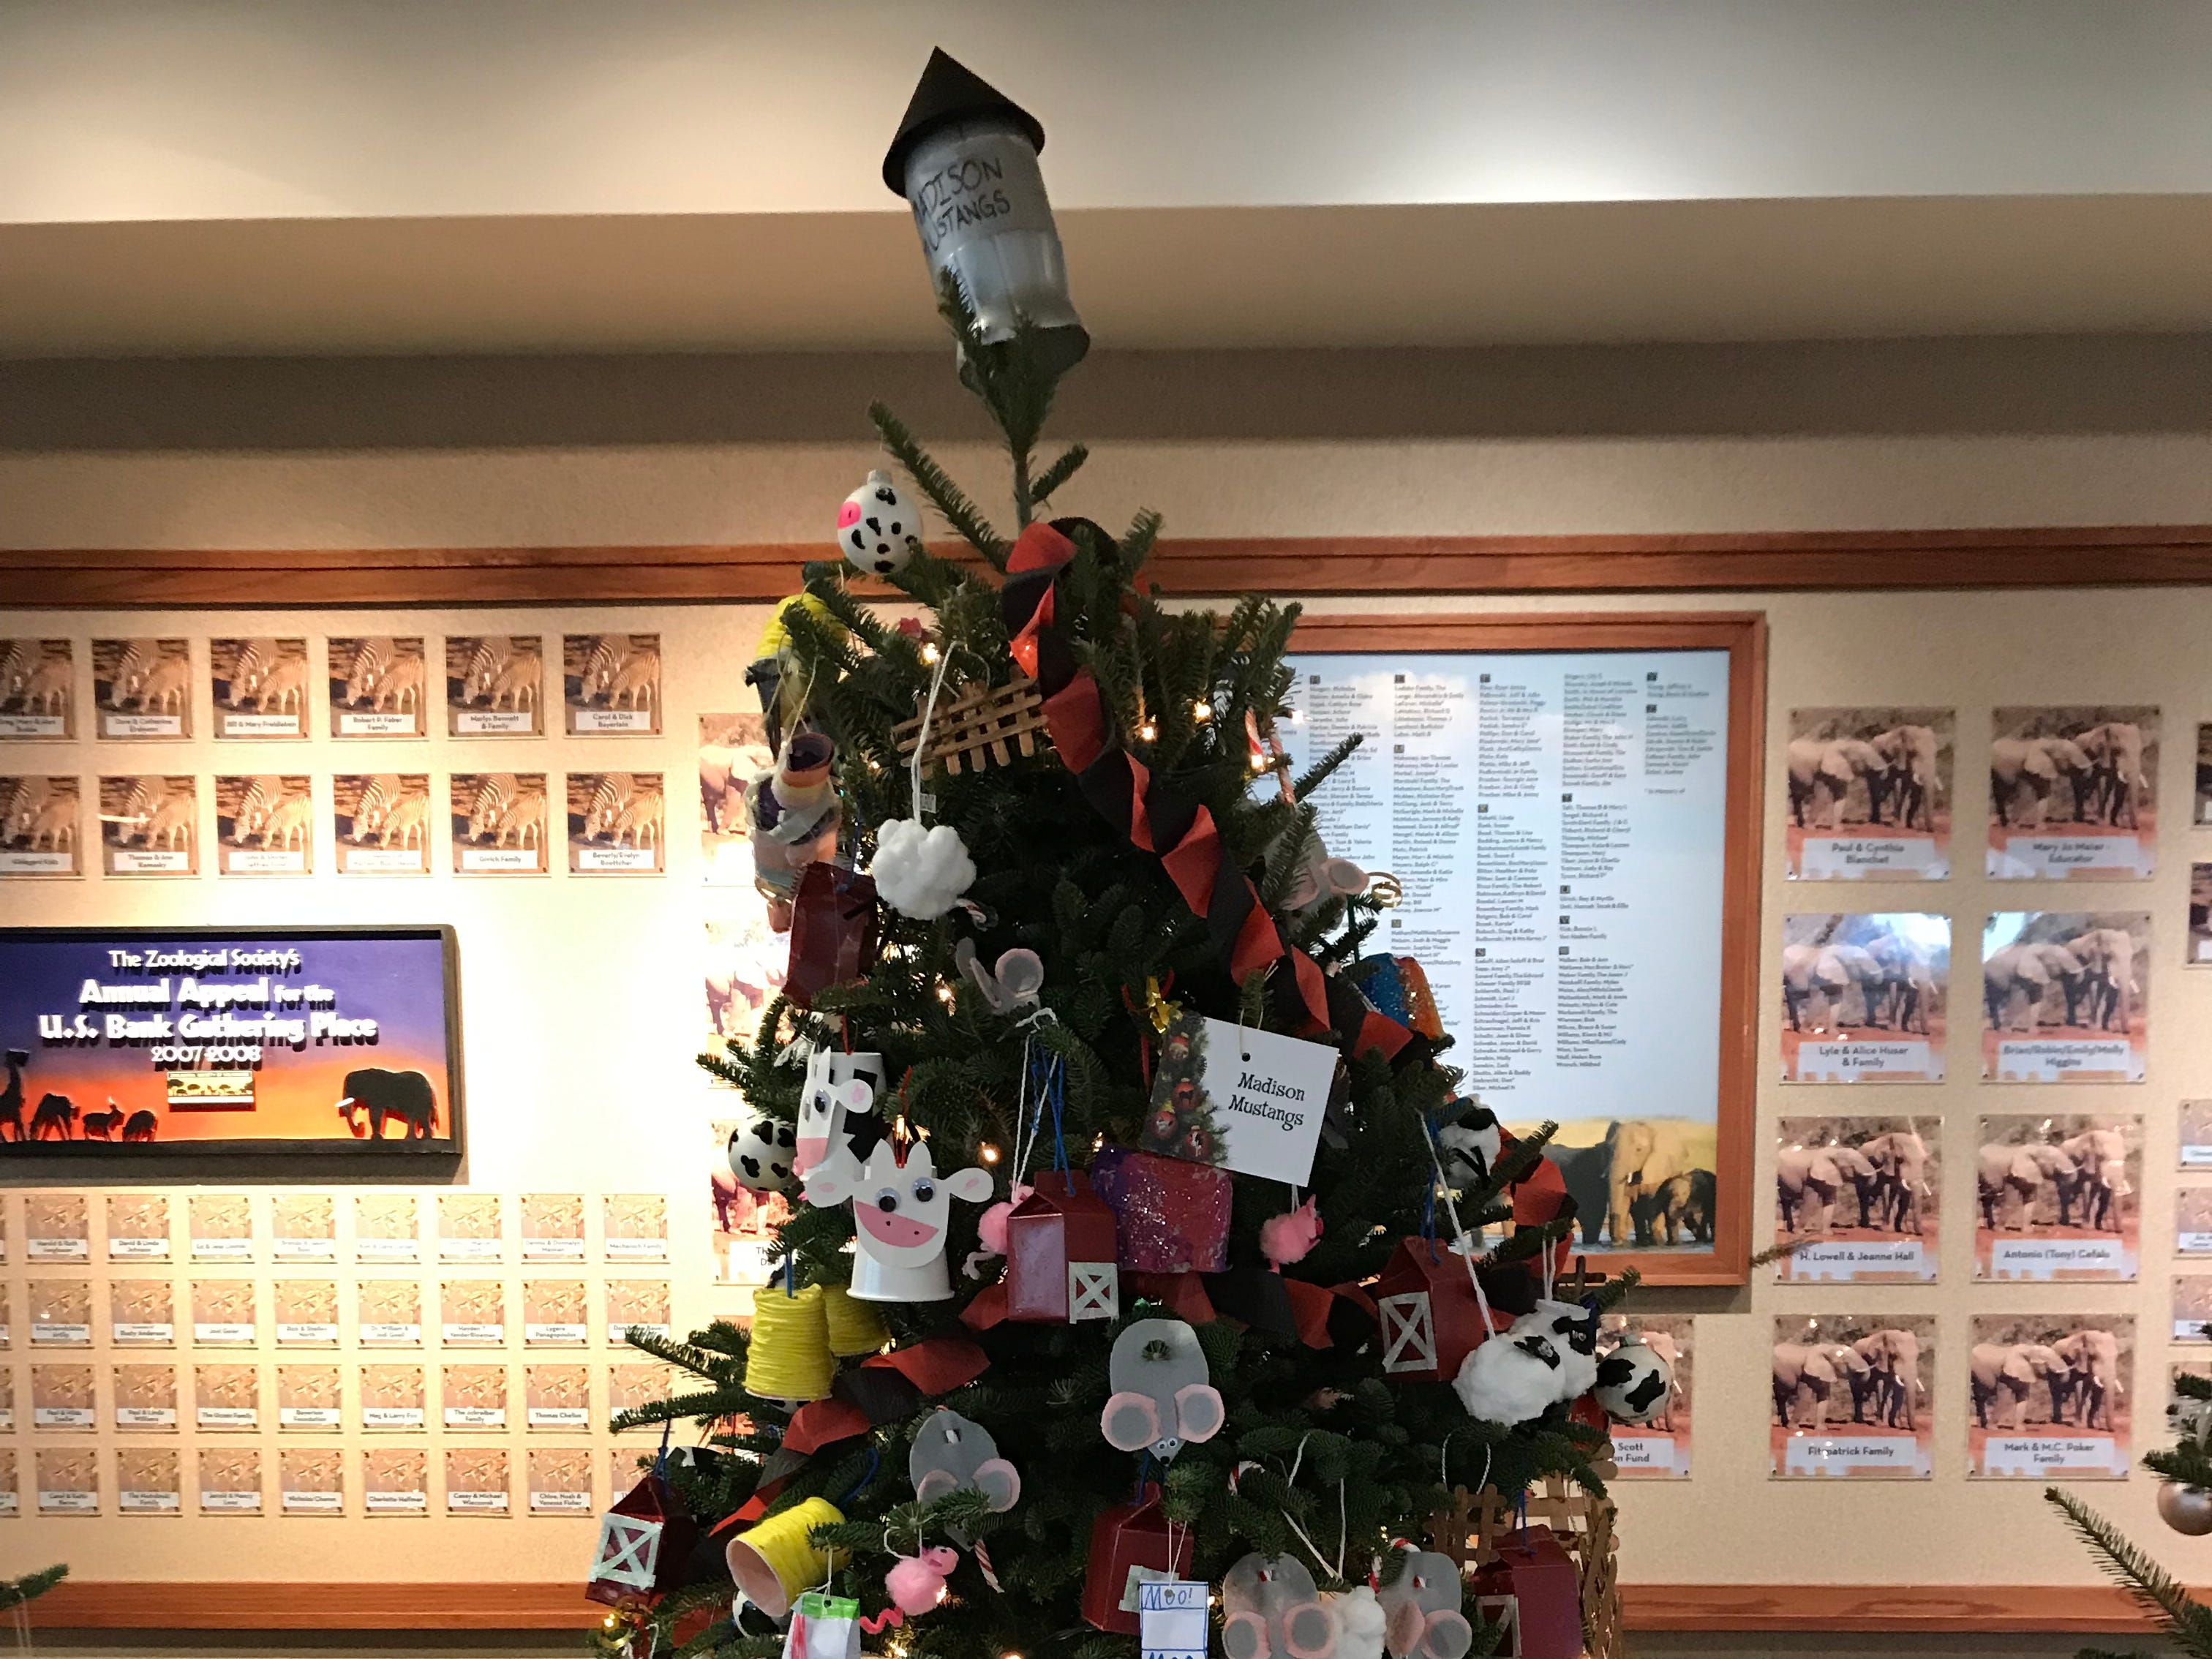 This tree, decorated by the Madison Mustangs, focuses on farm animals.